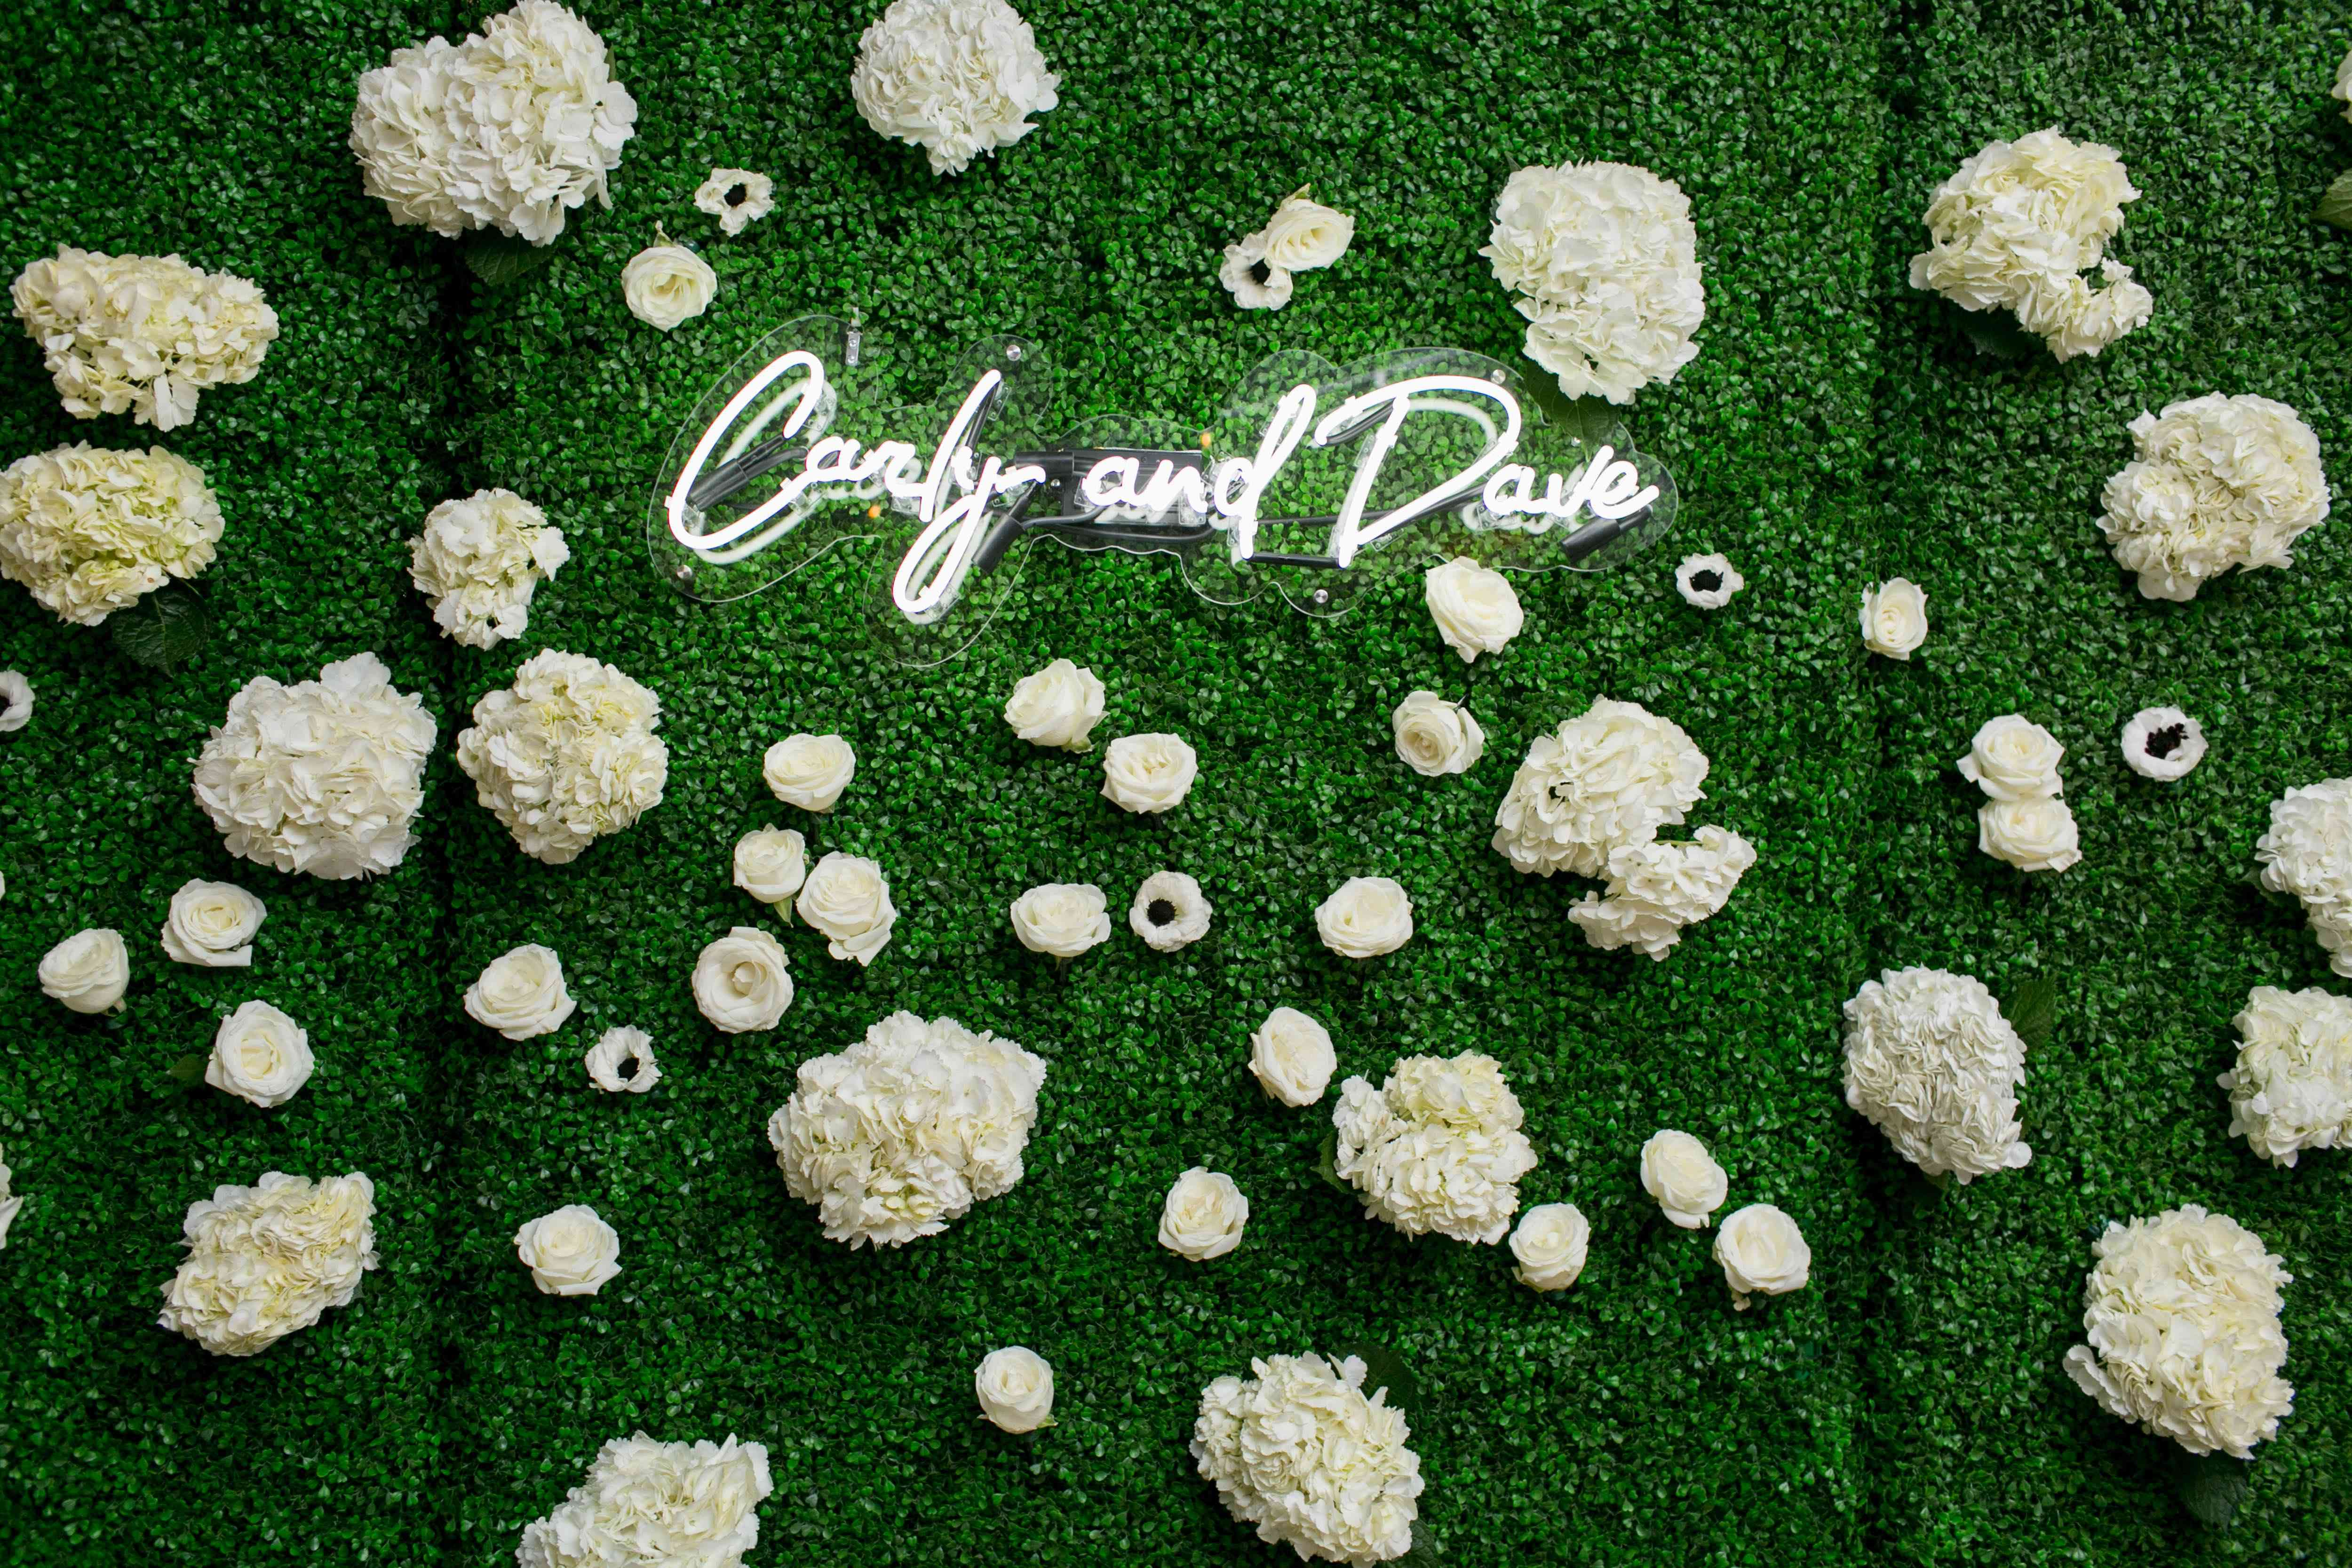 Neon sign on floral wall of greenery and hydrangeas